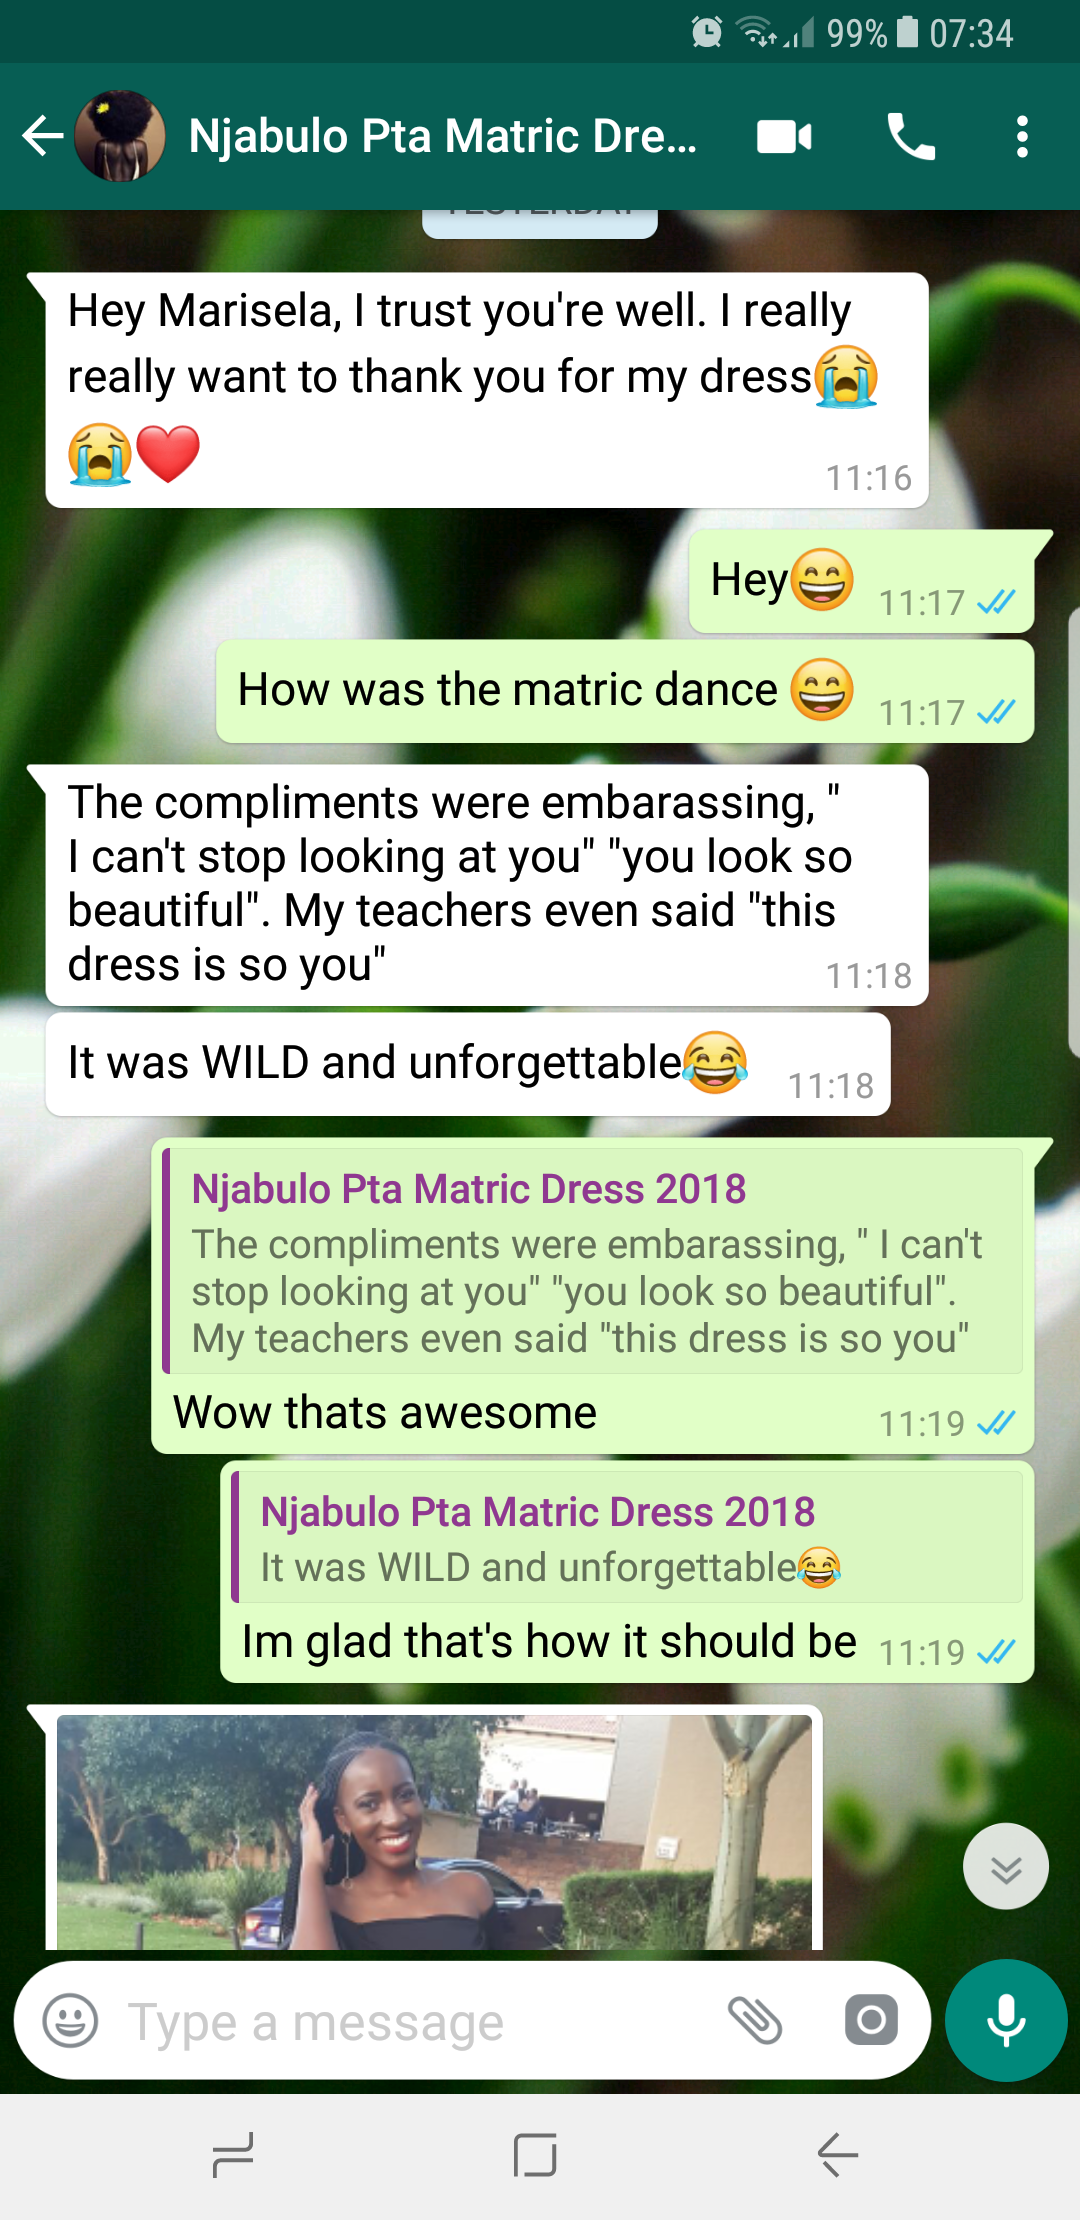 Njabulo's review of Marisela Veludo and the dress designed and made for her.